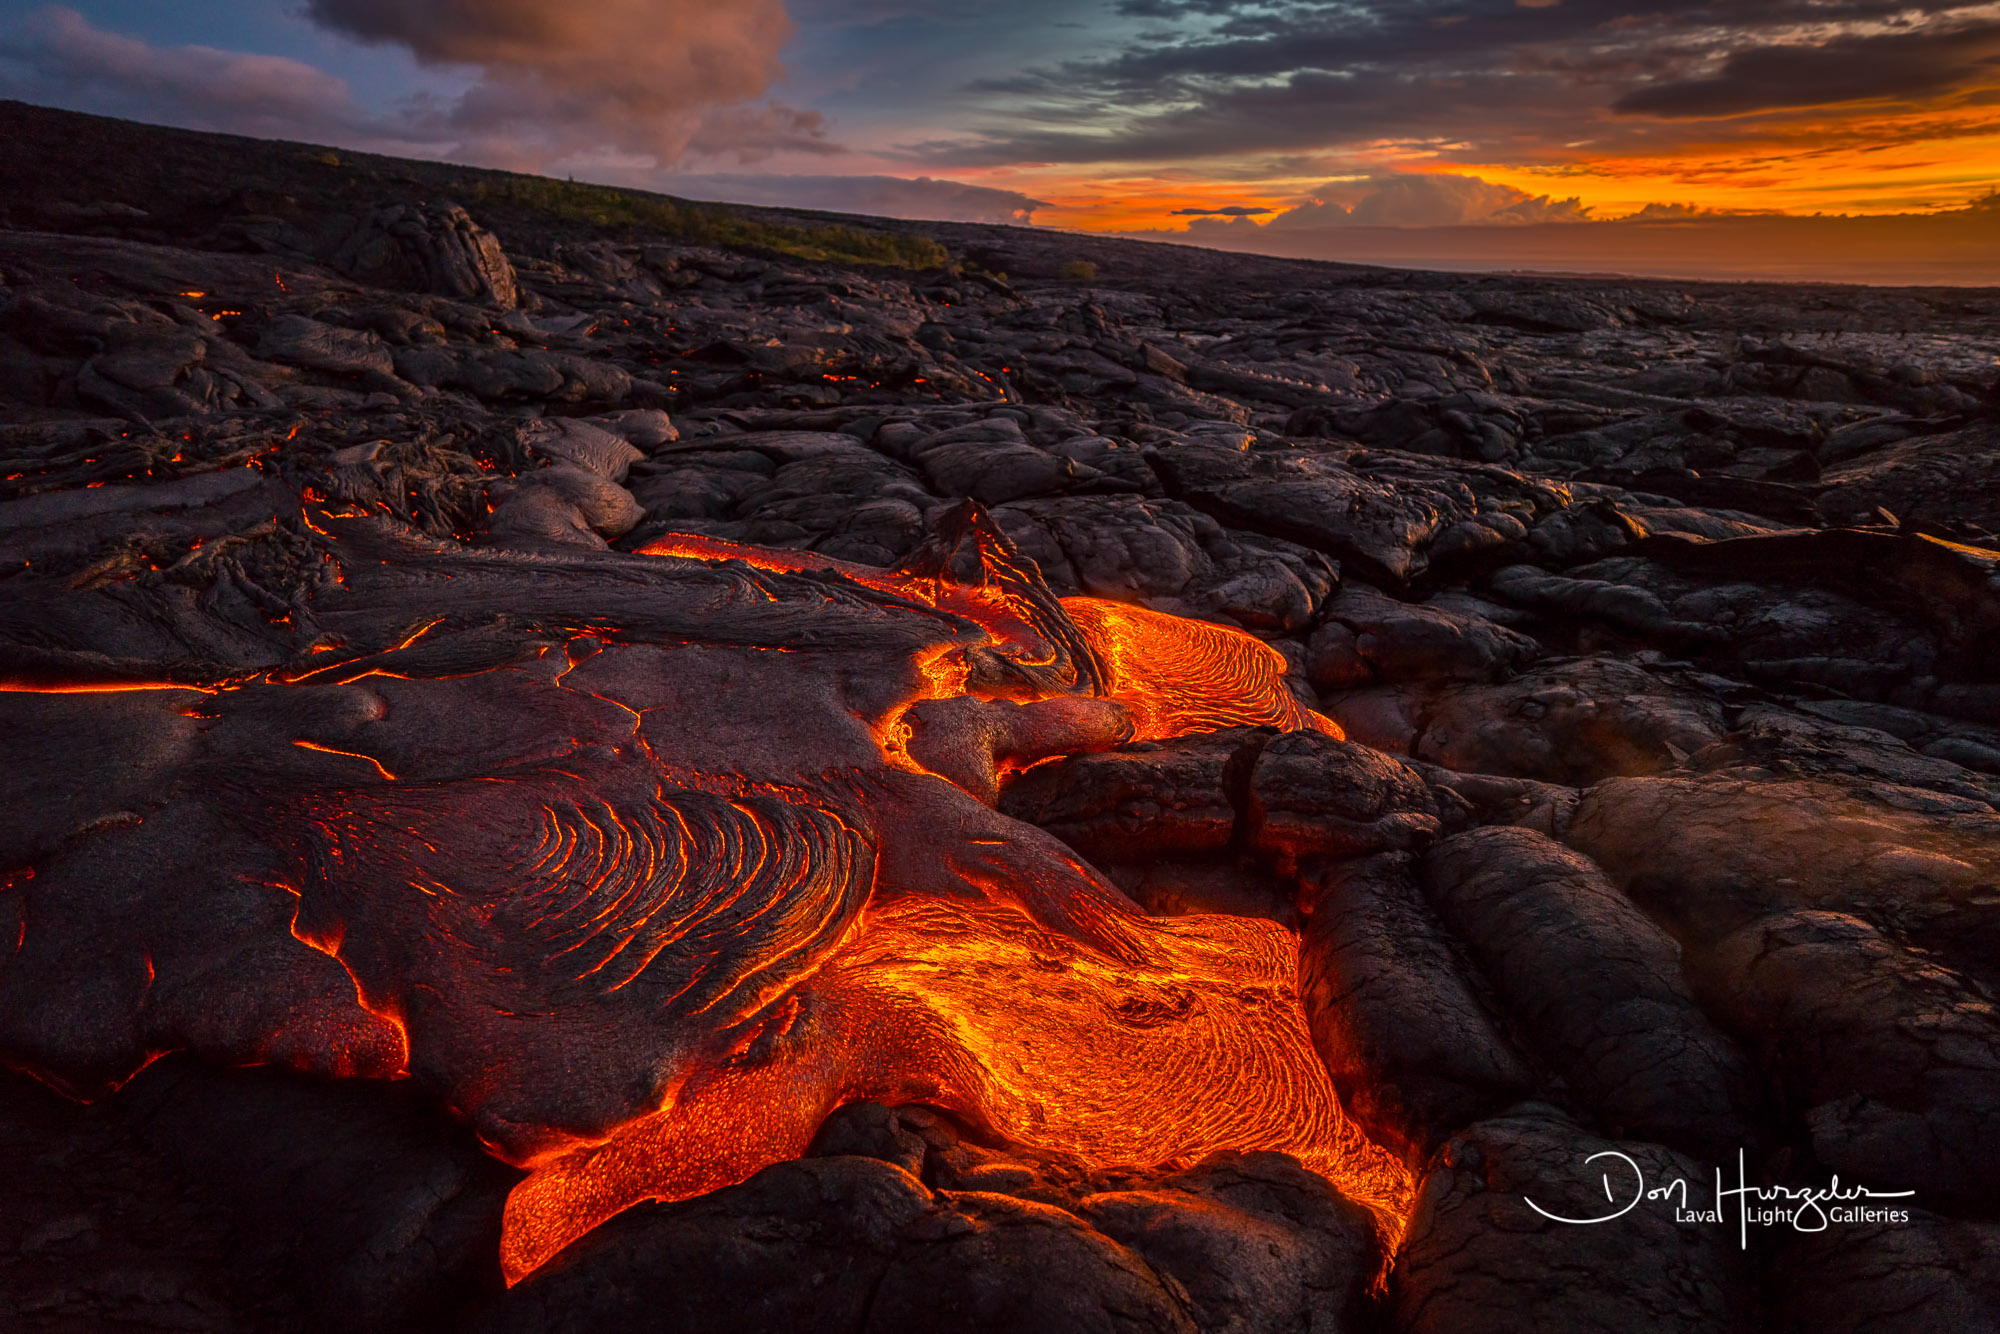 lava, lava flow, Kilauea, volcano, Hawaii eruption, photo